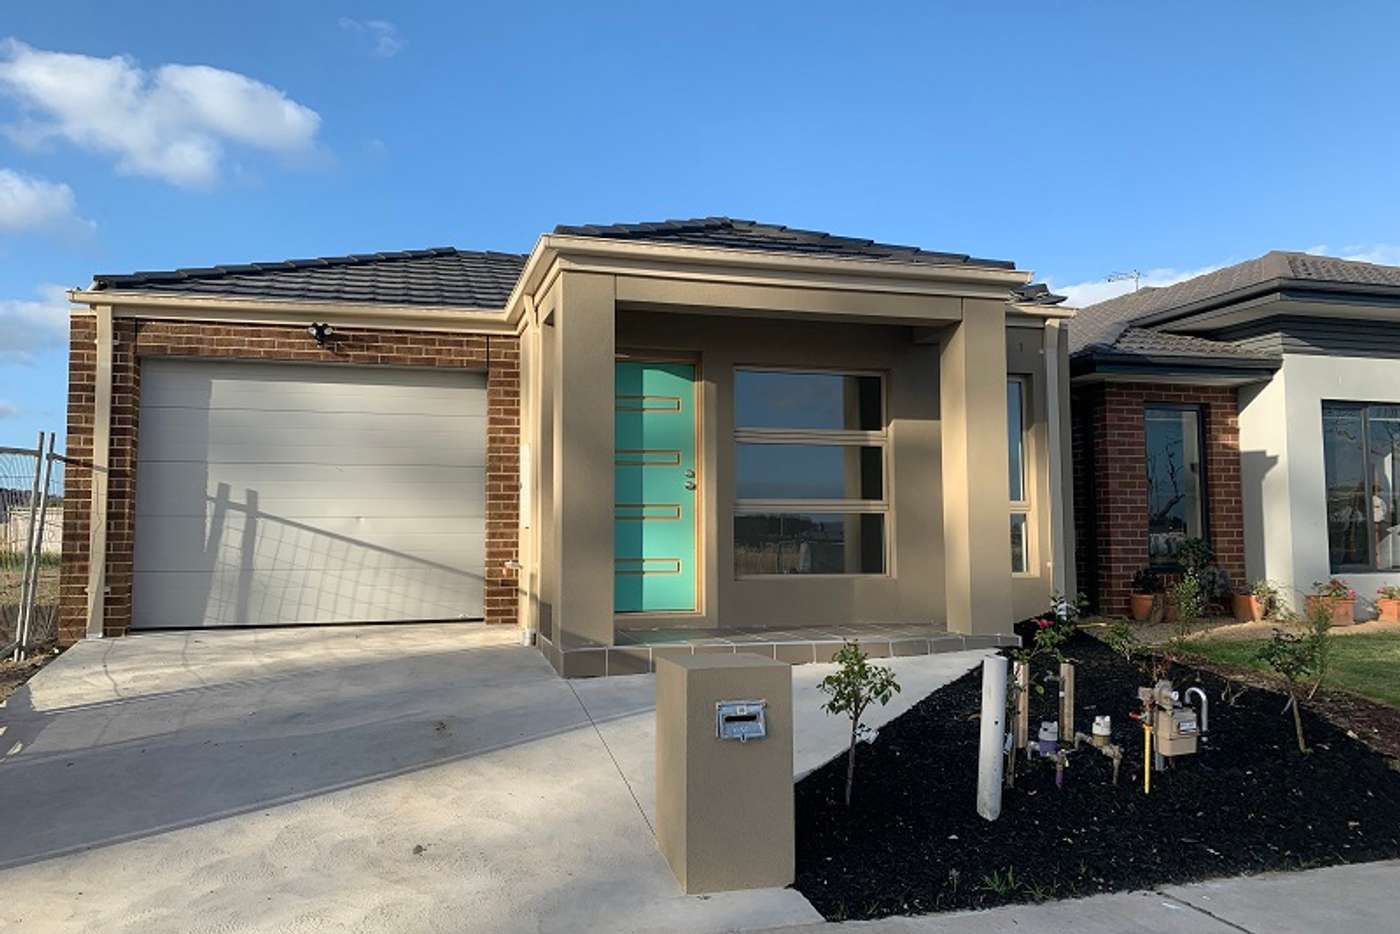 Main view of Homely house listing, 418 Rix Road, Beaconsfield VIC 3807